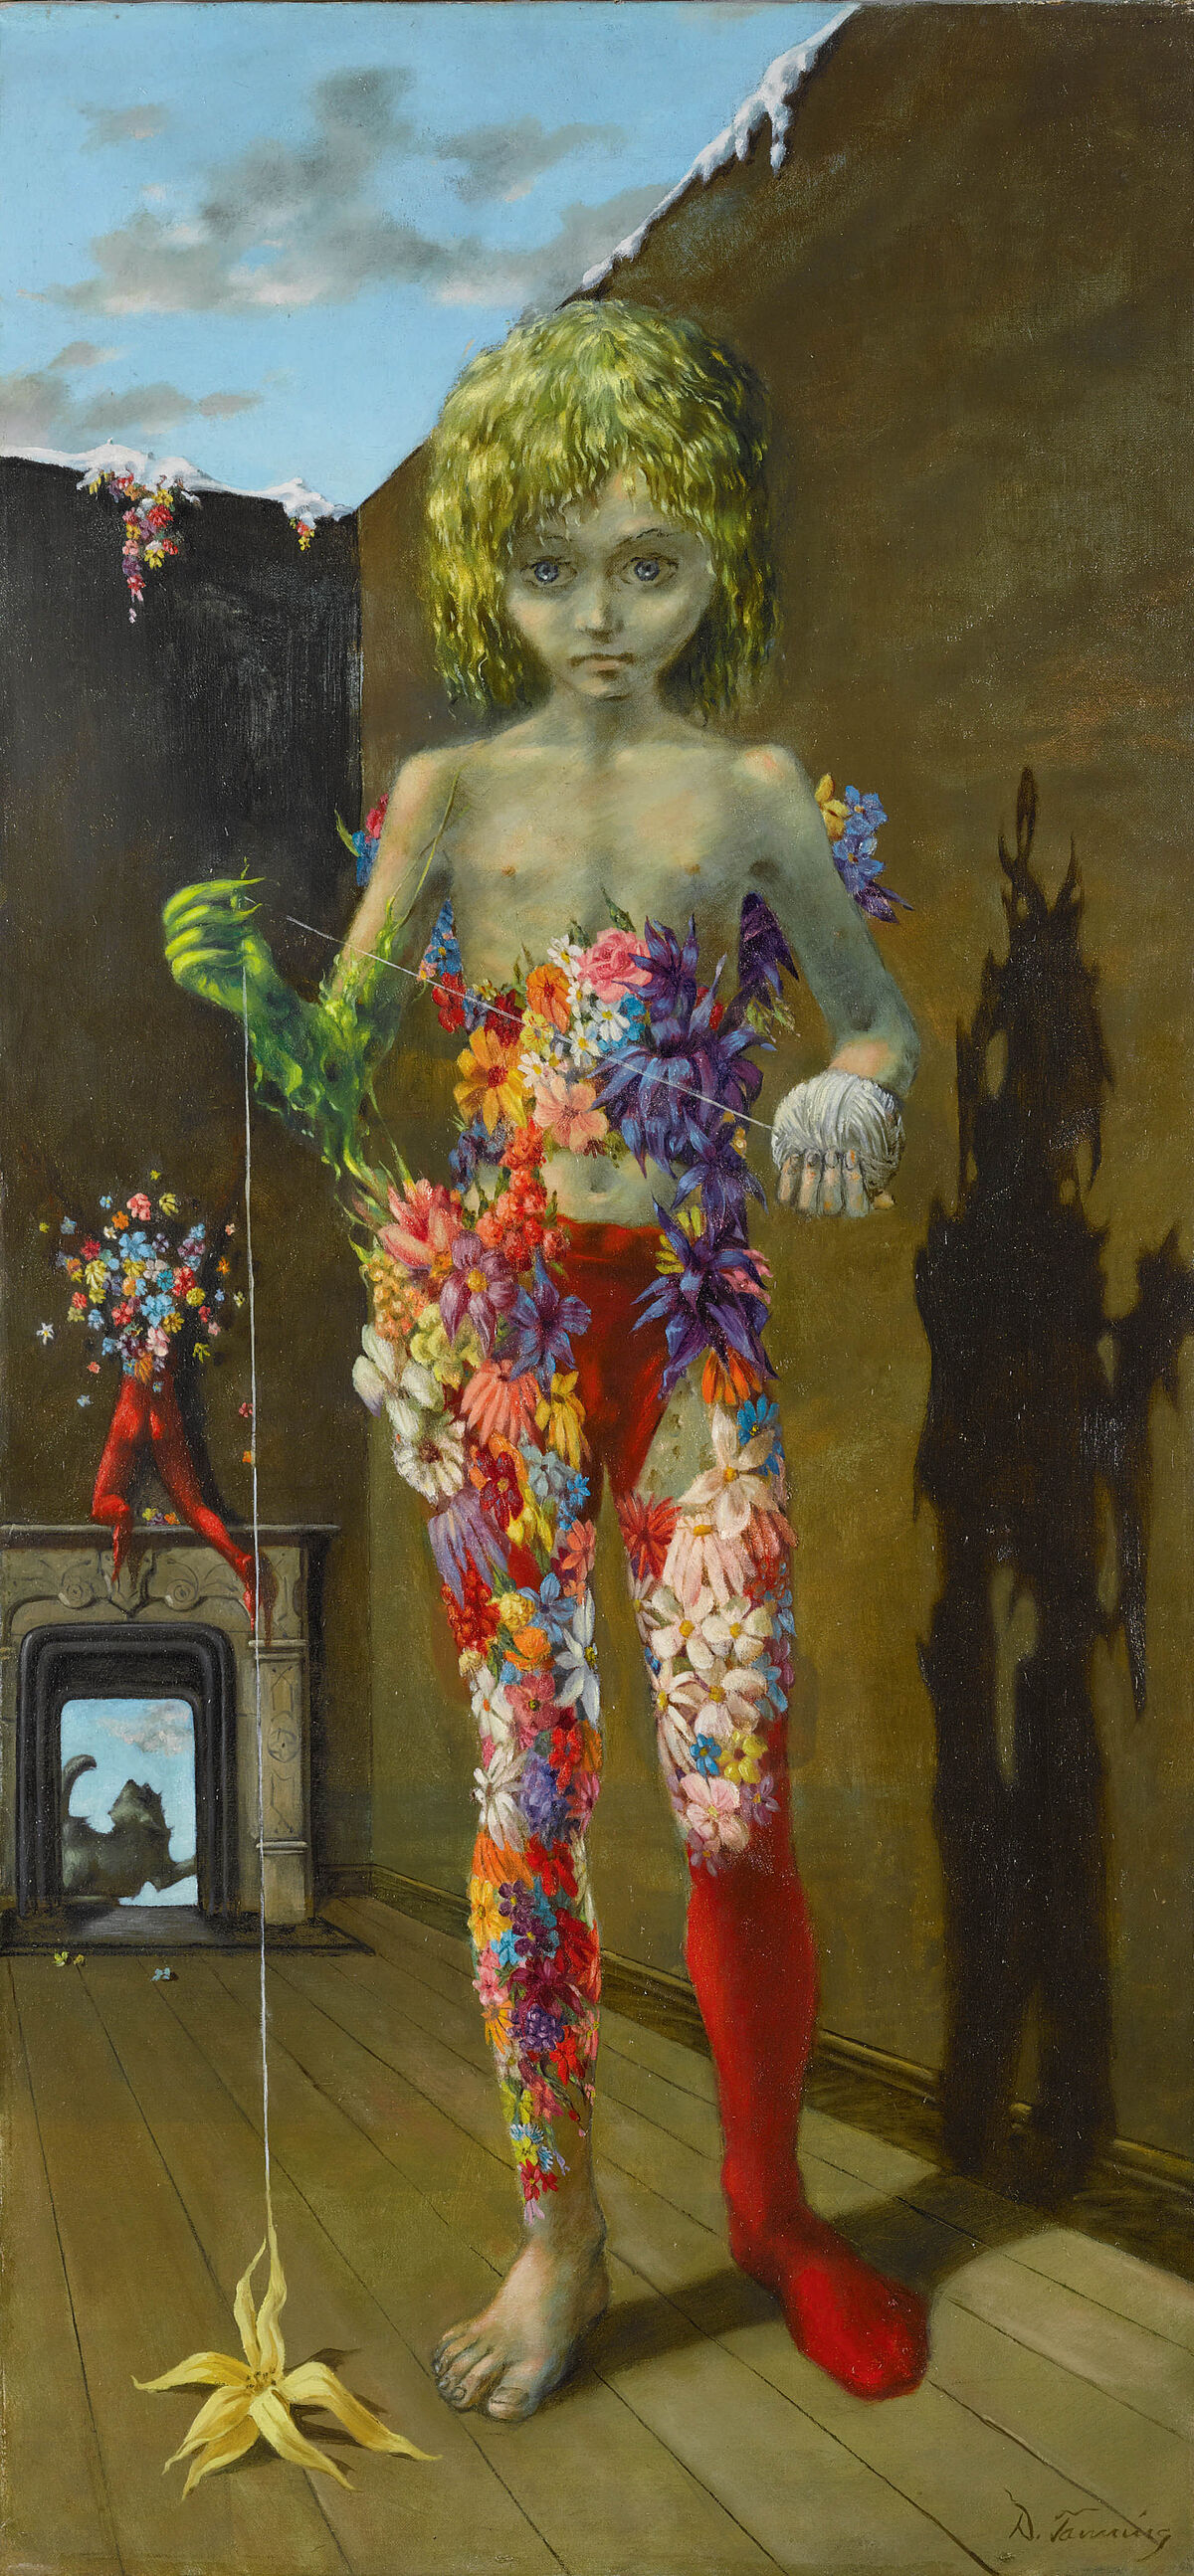 Dorothea Tanning, The Magic Flower Game, 1941. © DACS, 2018. Courtesy of Tate Modern.